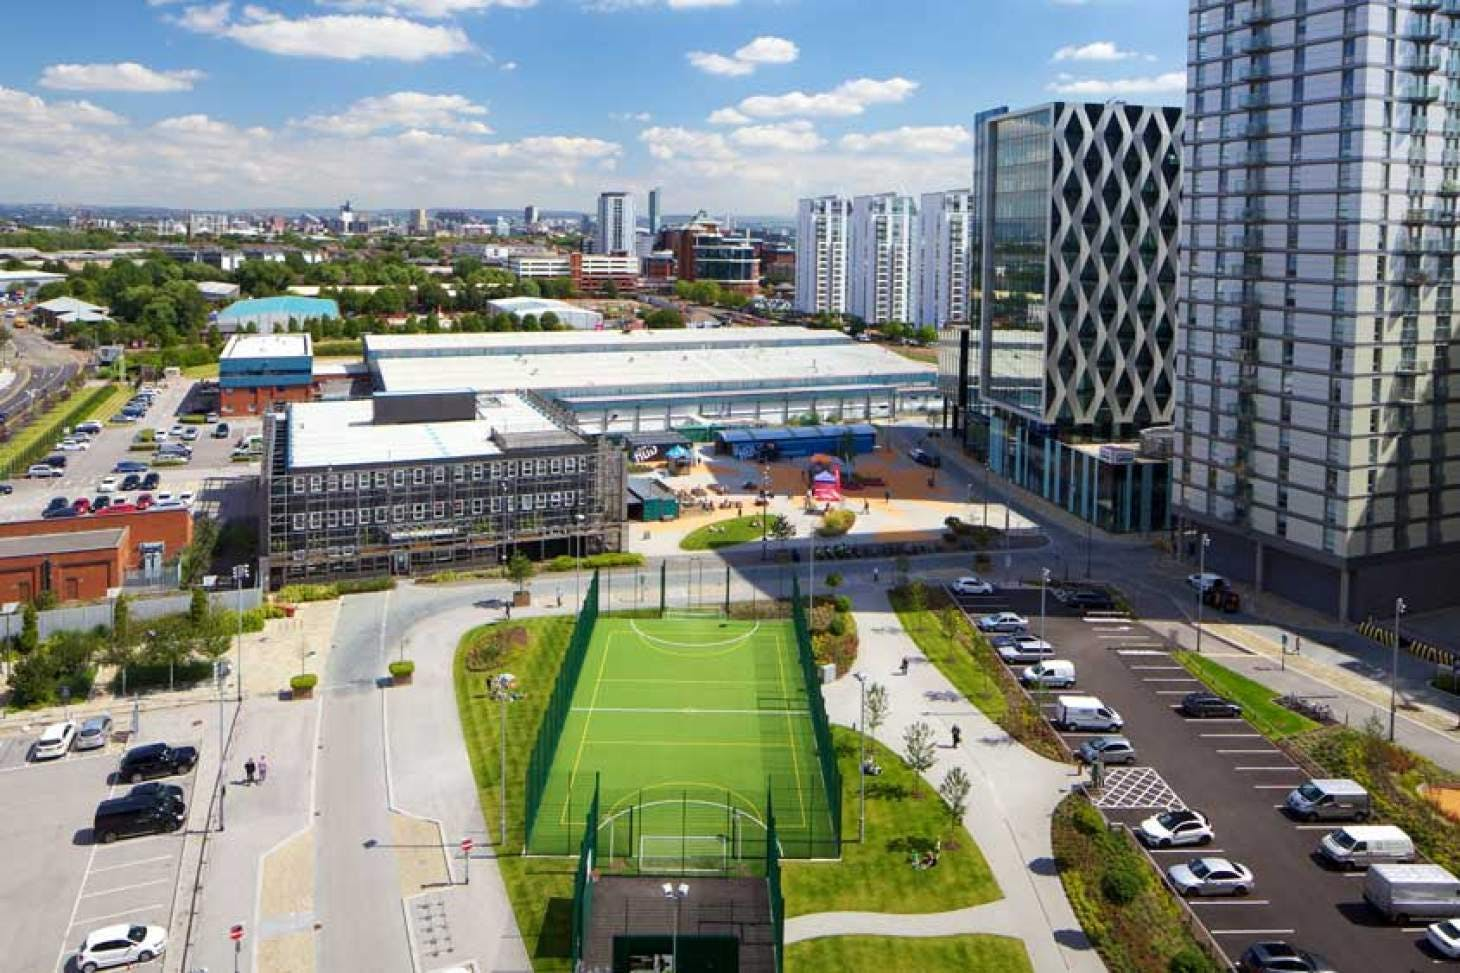 The Pitch - MediaCityUK 5 a side | 3G Astroturf football pitch